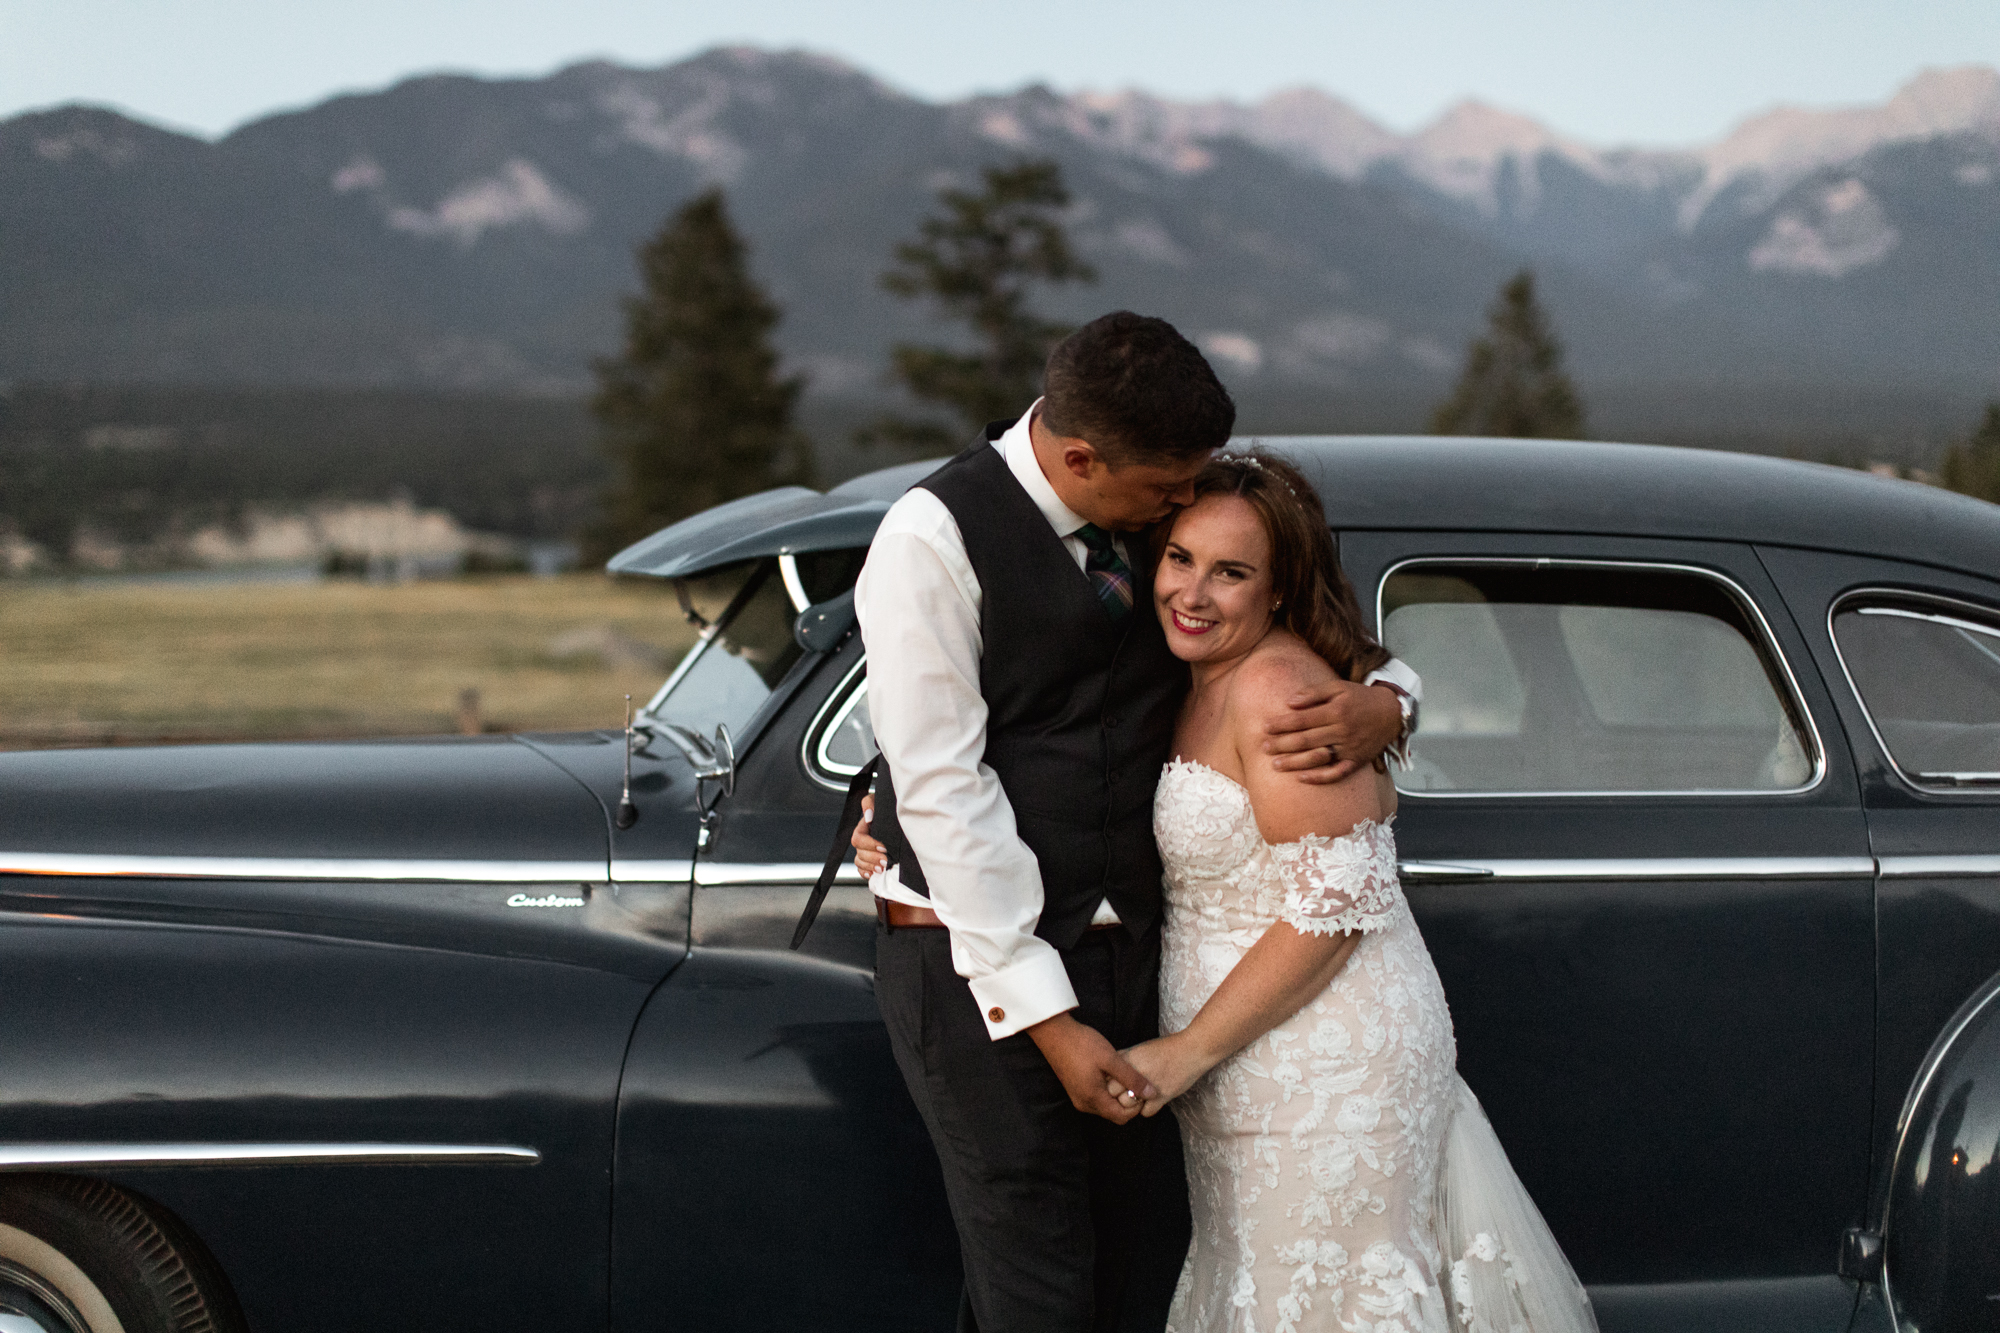 121-Willow_and_Wolf_Wedding_Photography_Heather_and_Devon_Invermere_Wedding_Dancing_-BEC_8954